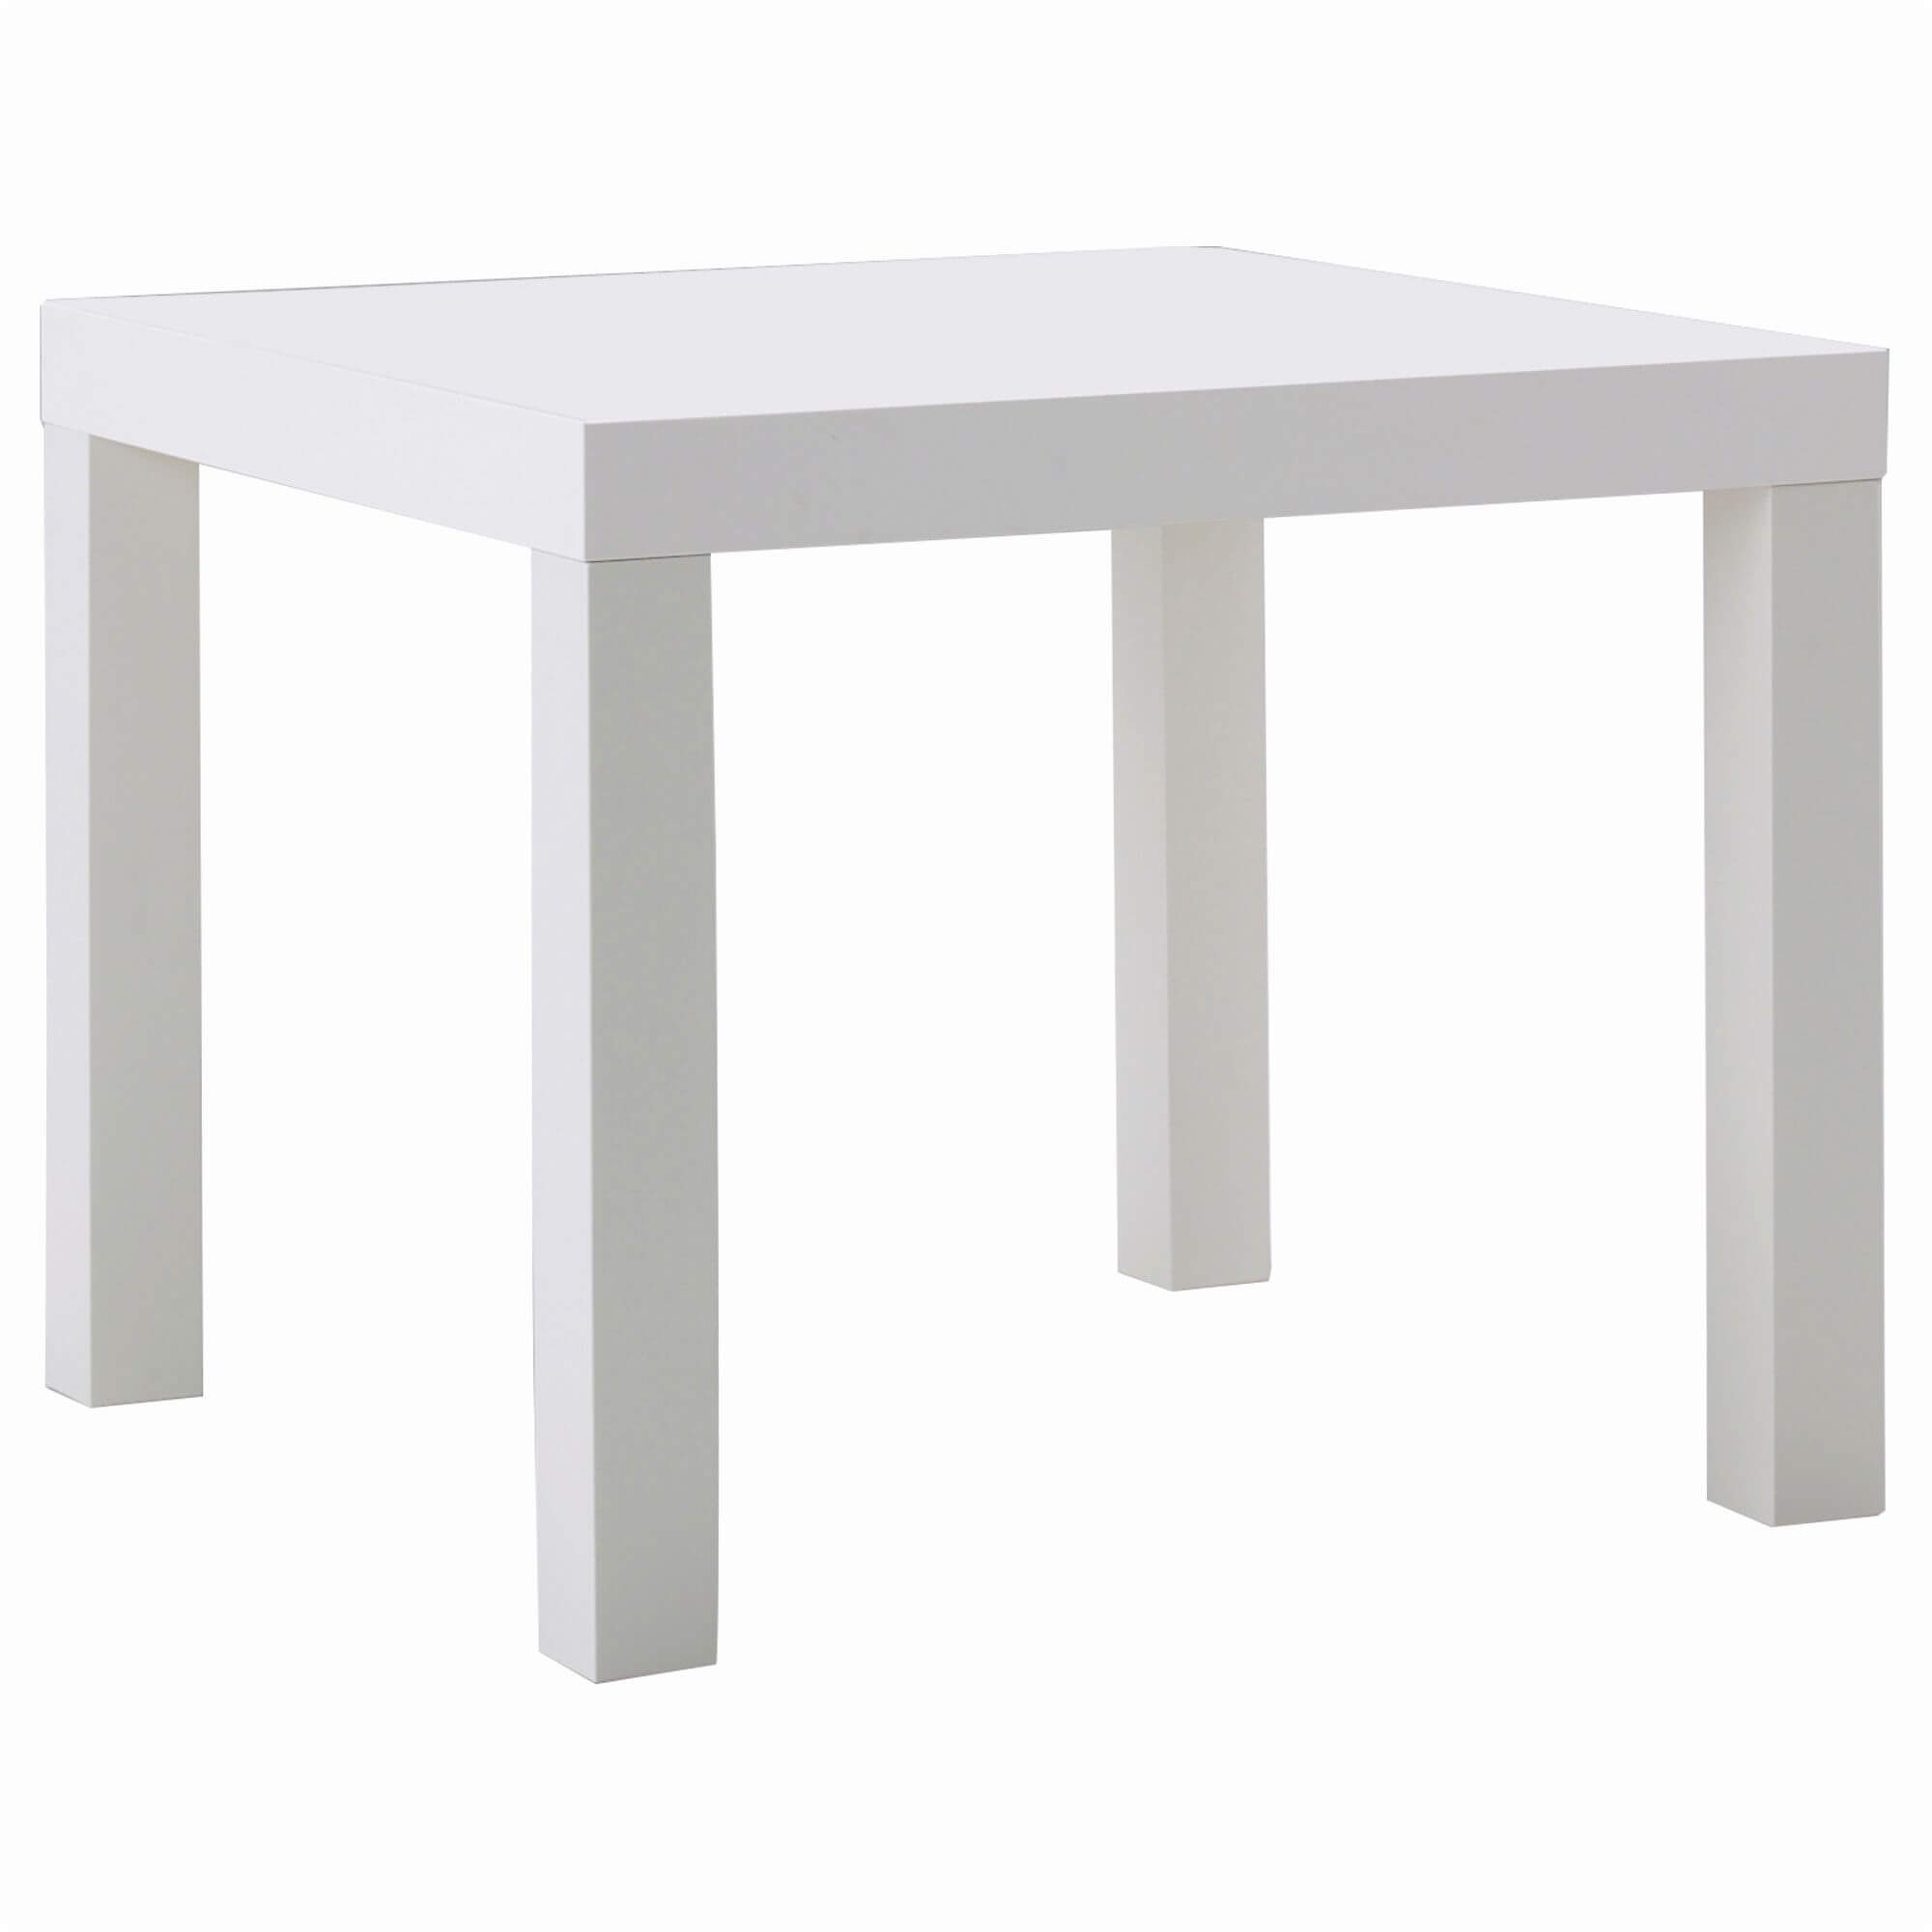 beautiful hemnes sofa table photograph-Lovely Hemnes sofa Table Layout